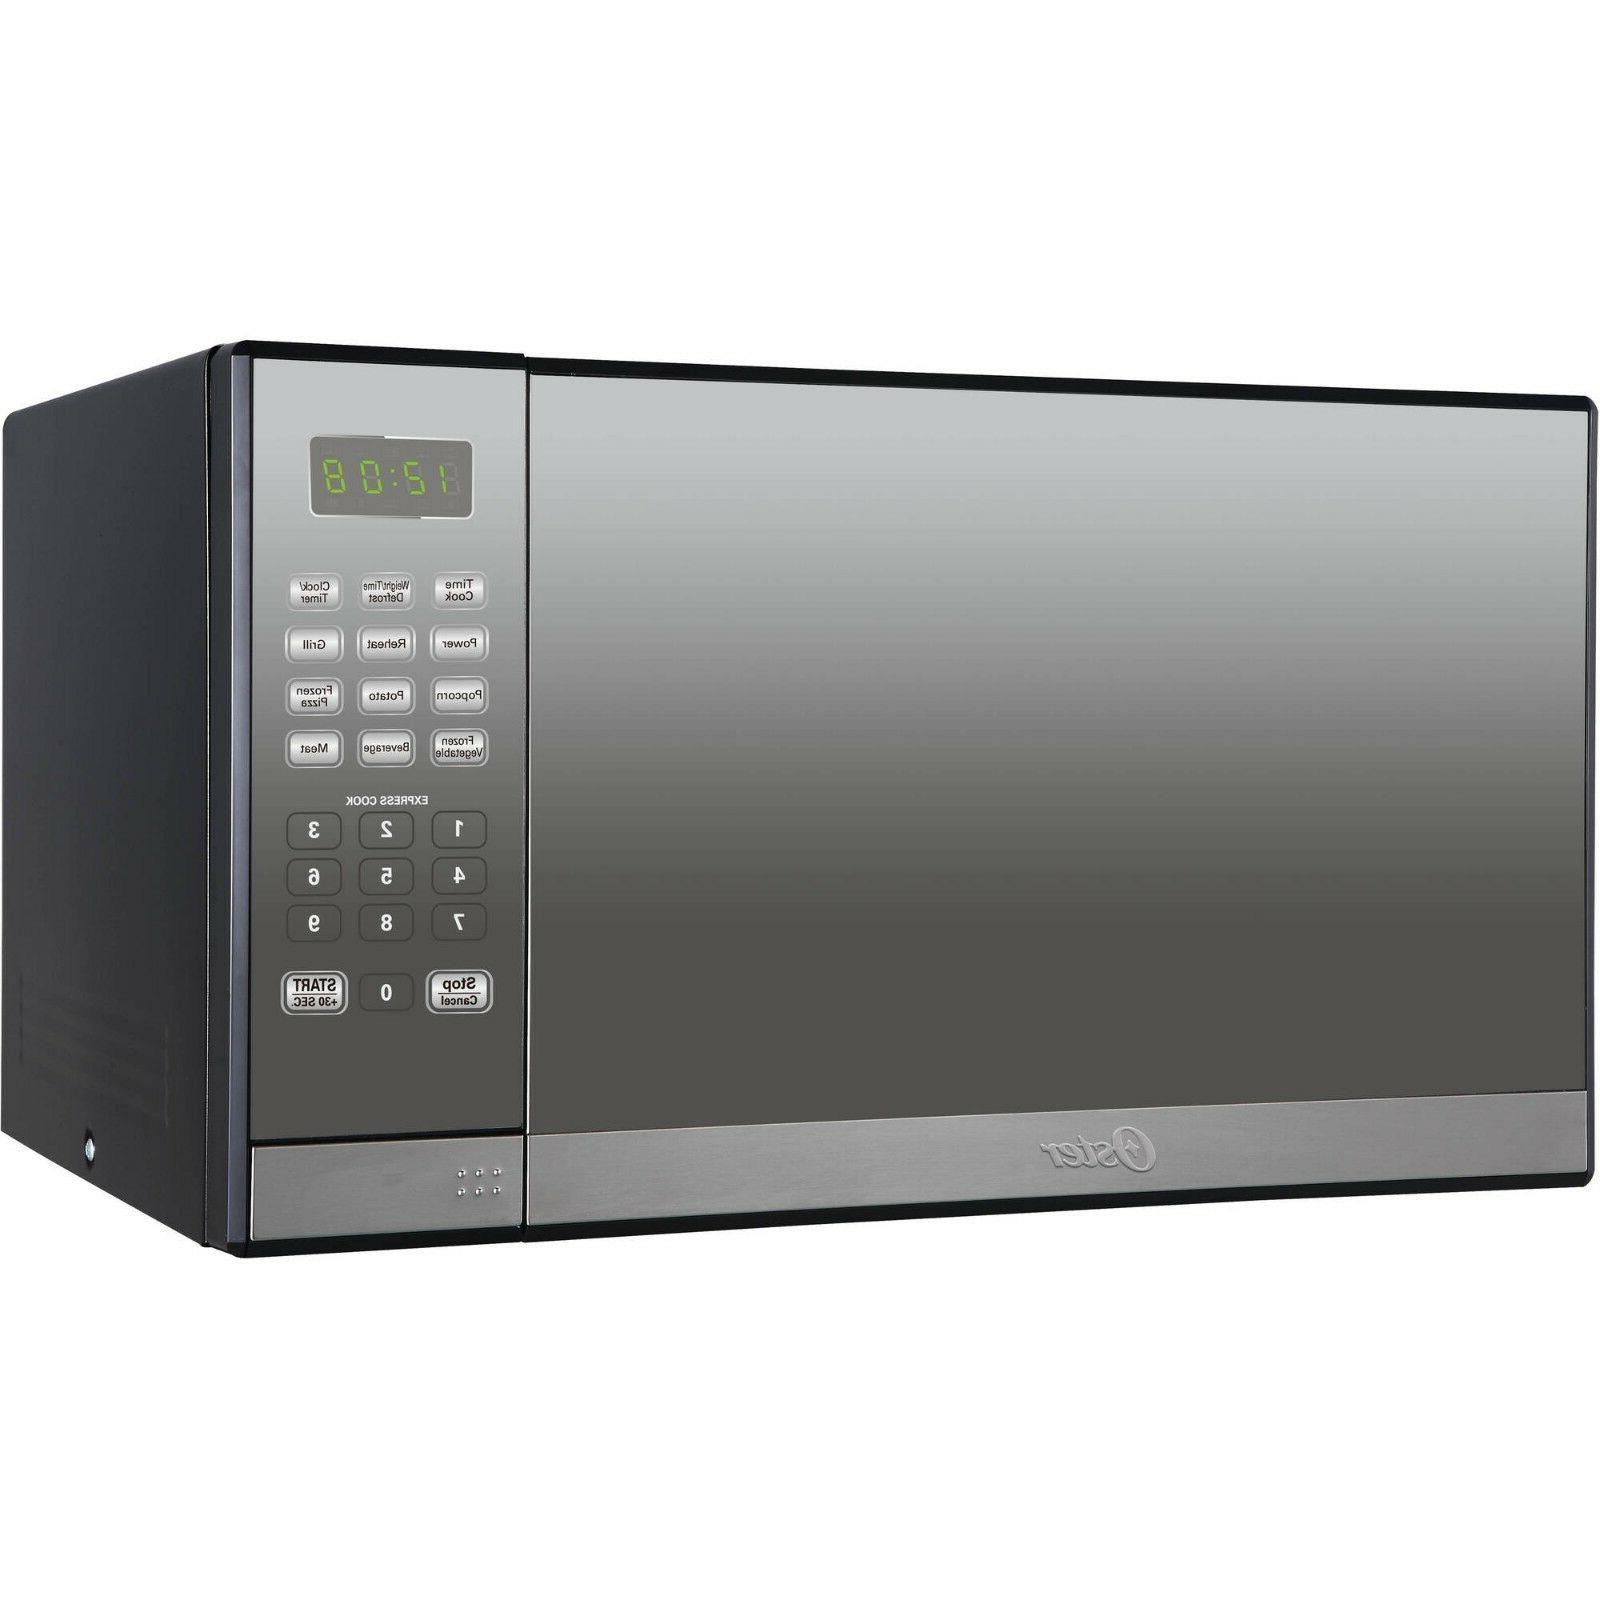 1000W Microwave Oven w/ Grill Countertop Mirror